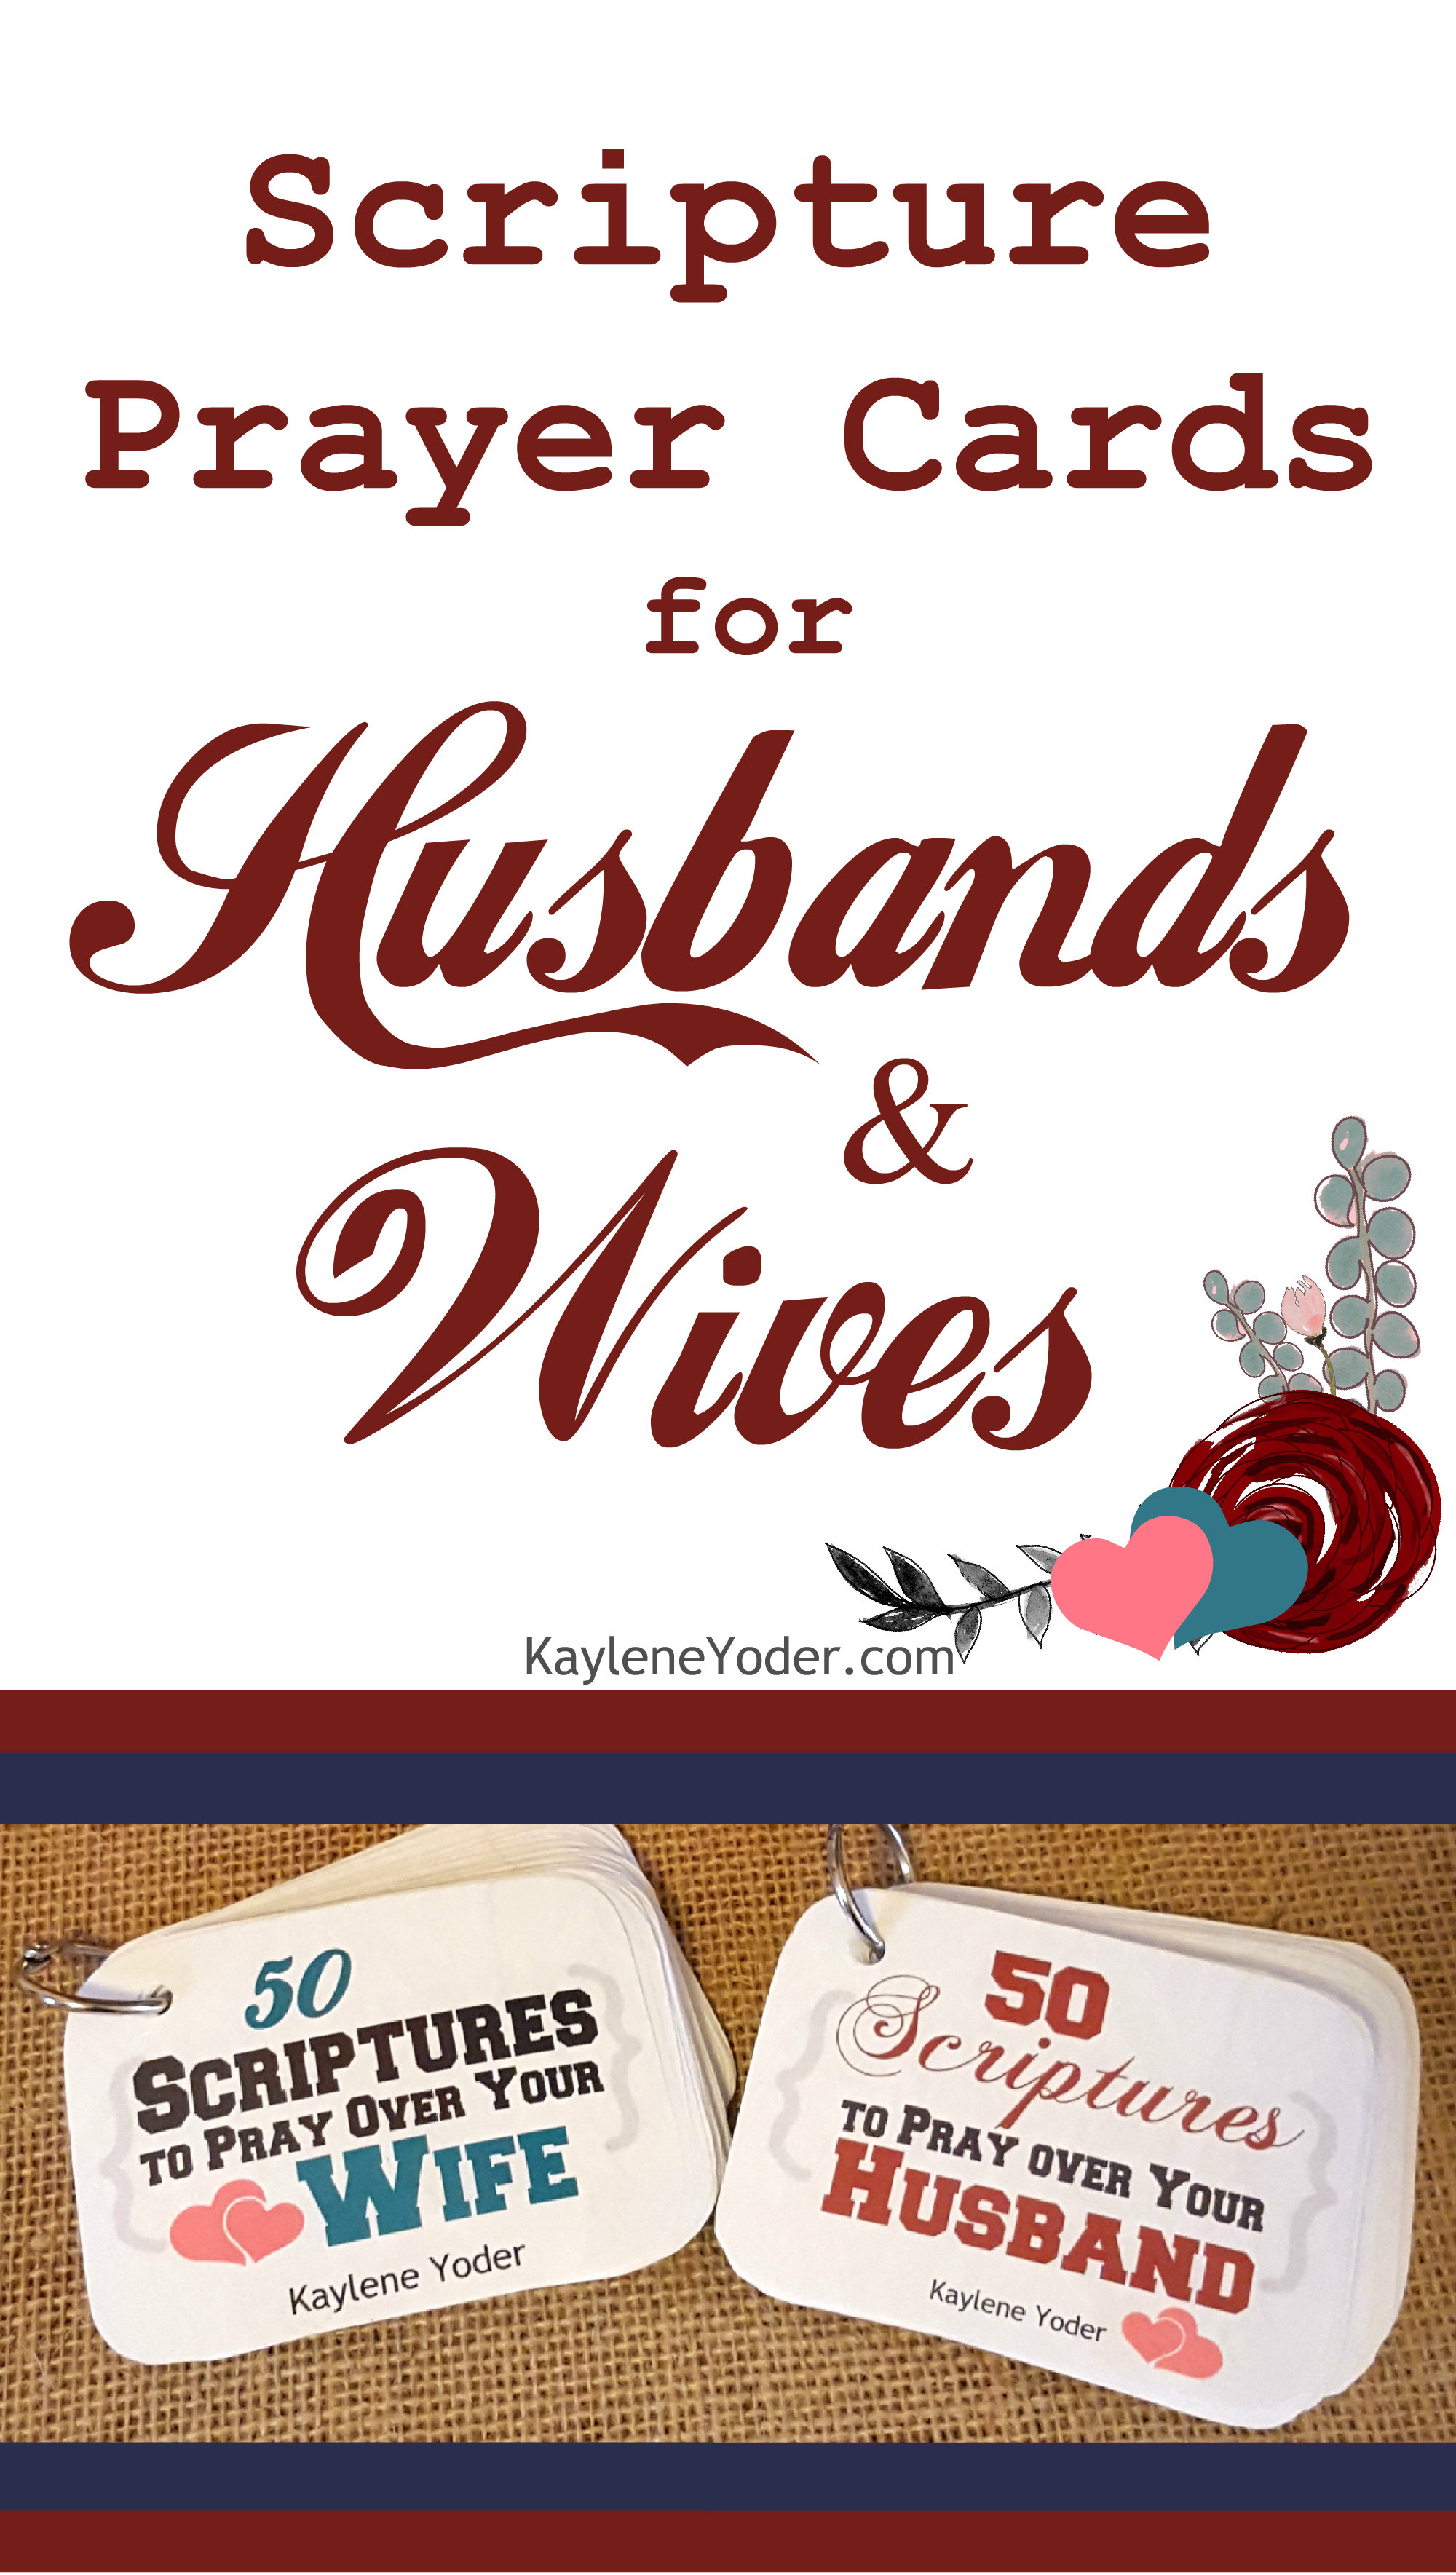 100 Scripture Prayer Cards for Husbands & Wives